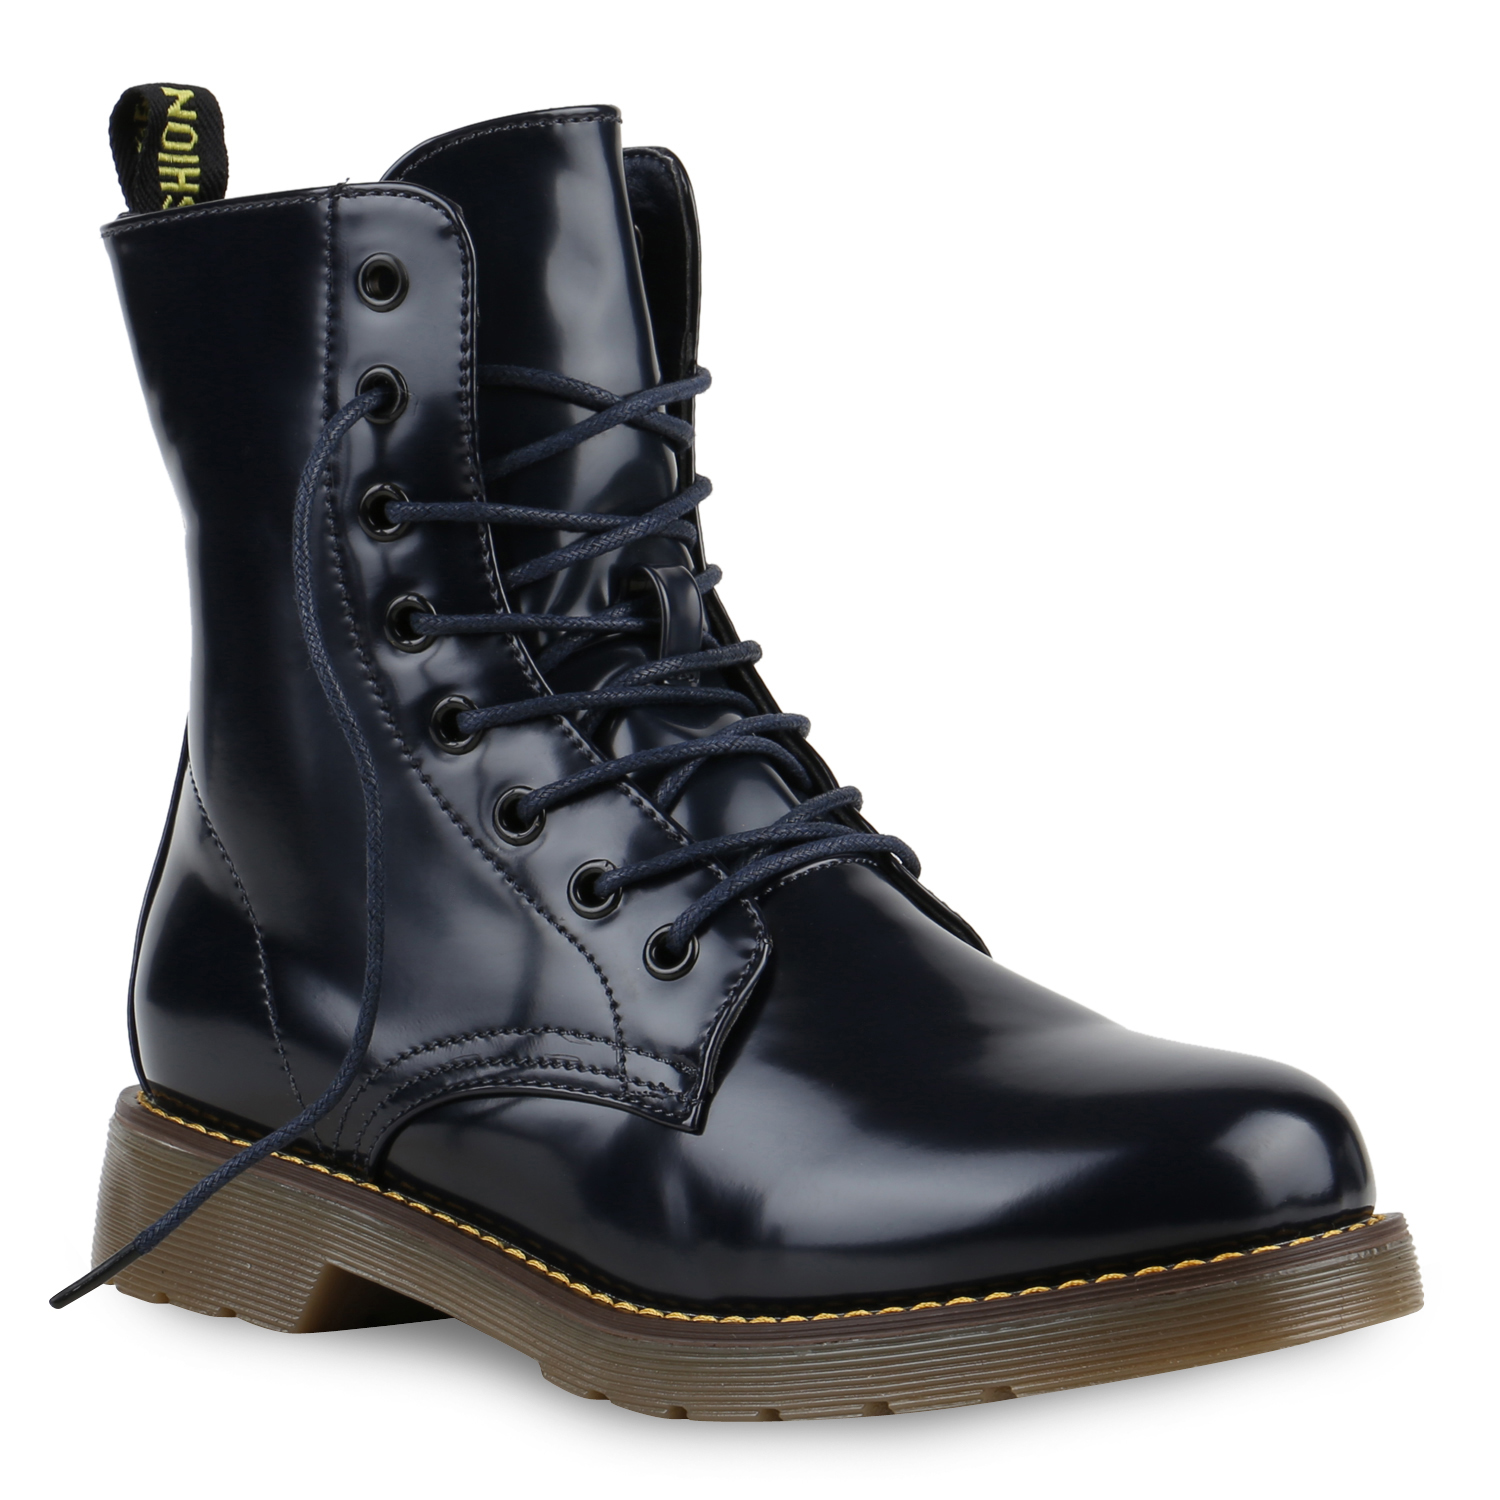 damen worker boots lack stiefeletten grunge profil sohle 812576 punk ebay. Black Bedroom Furniture Sets. Home Design Ideas